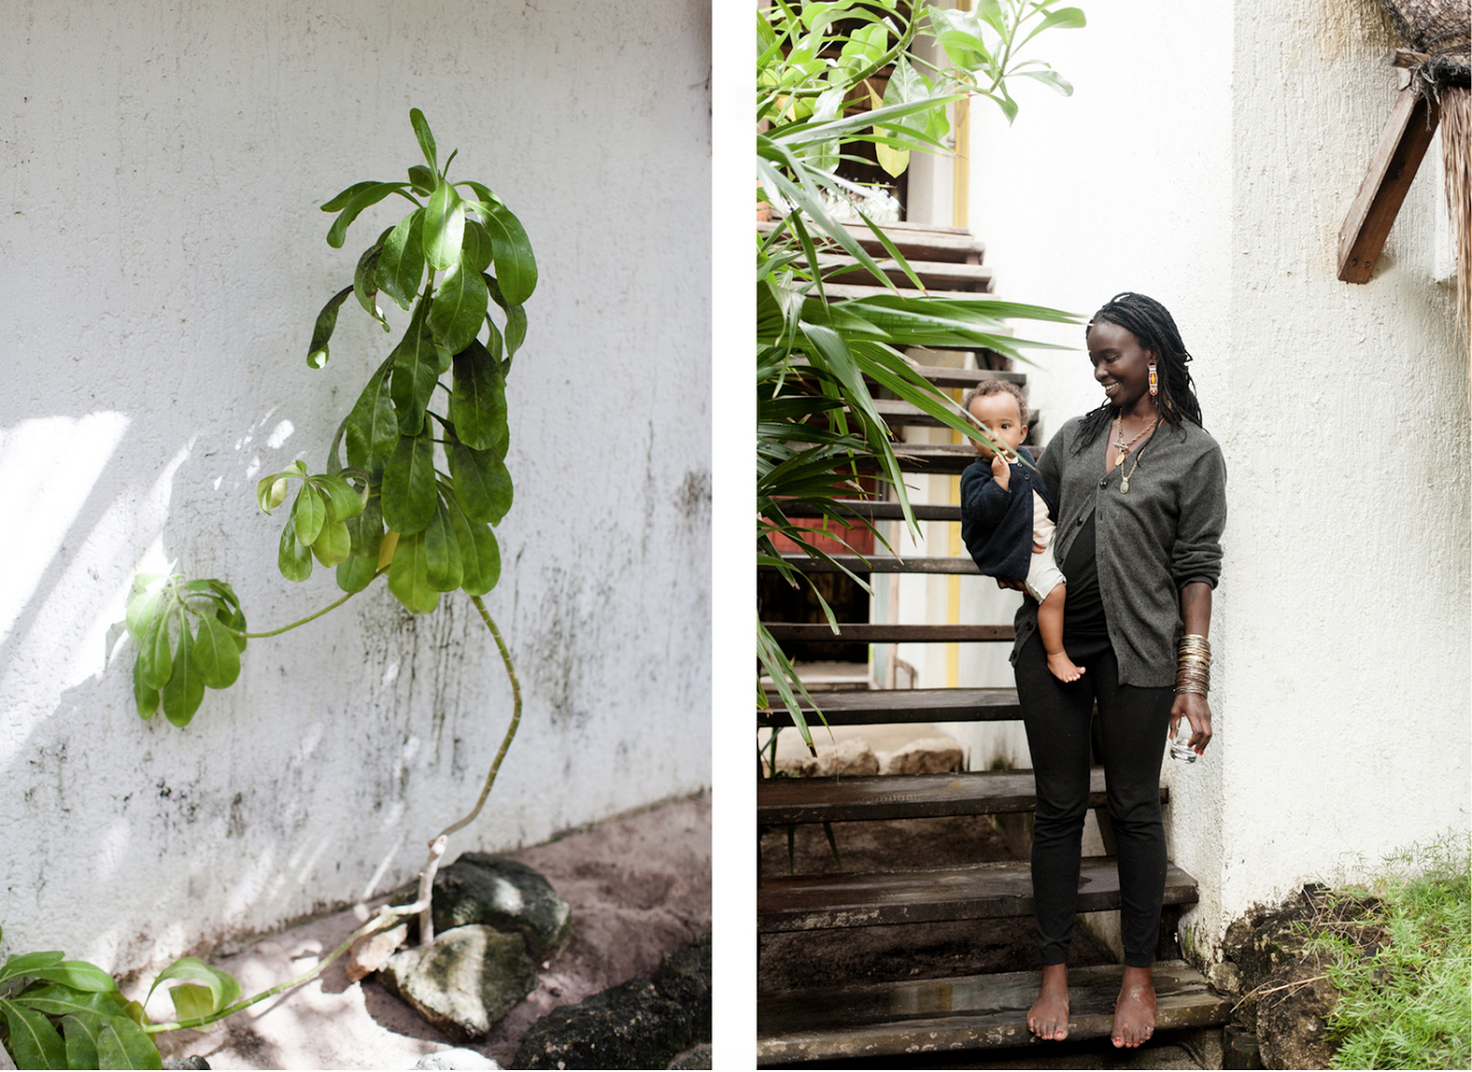 """""""From my trip to Tulum, Mexico. Took these two images at the same hotel, and loved how they played off of each other. Her holding the baby and the plant seemingly having an arm extended out to the small palm.""""  